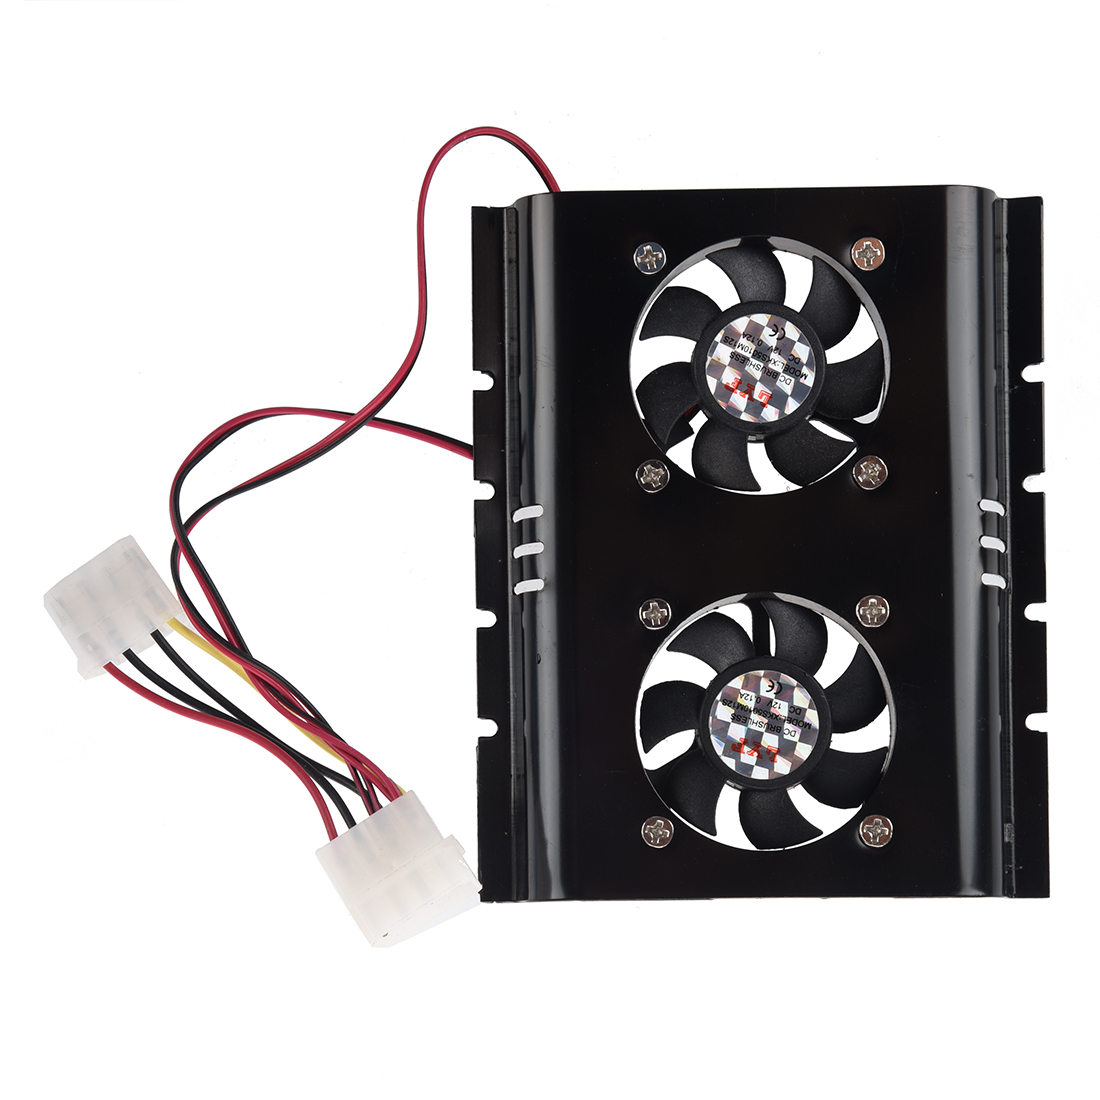 Black 3.5 SATA IDE Hard Disk Drive HDD 2 Fan Cooler for PC free shipping for hp designjet 5100 hard disk drive hdd ide or sata cg710 60009 plotter part